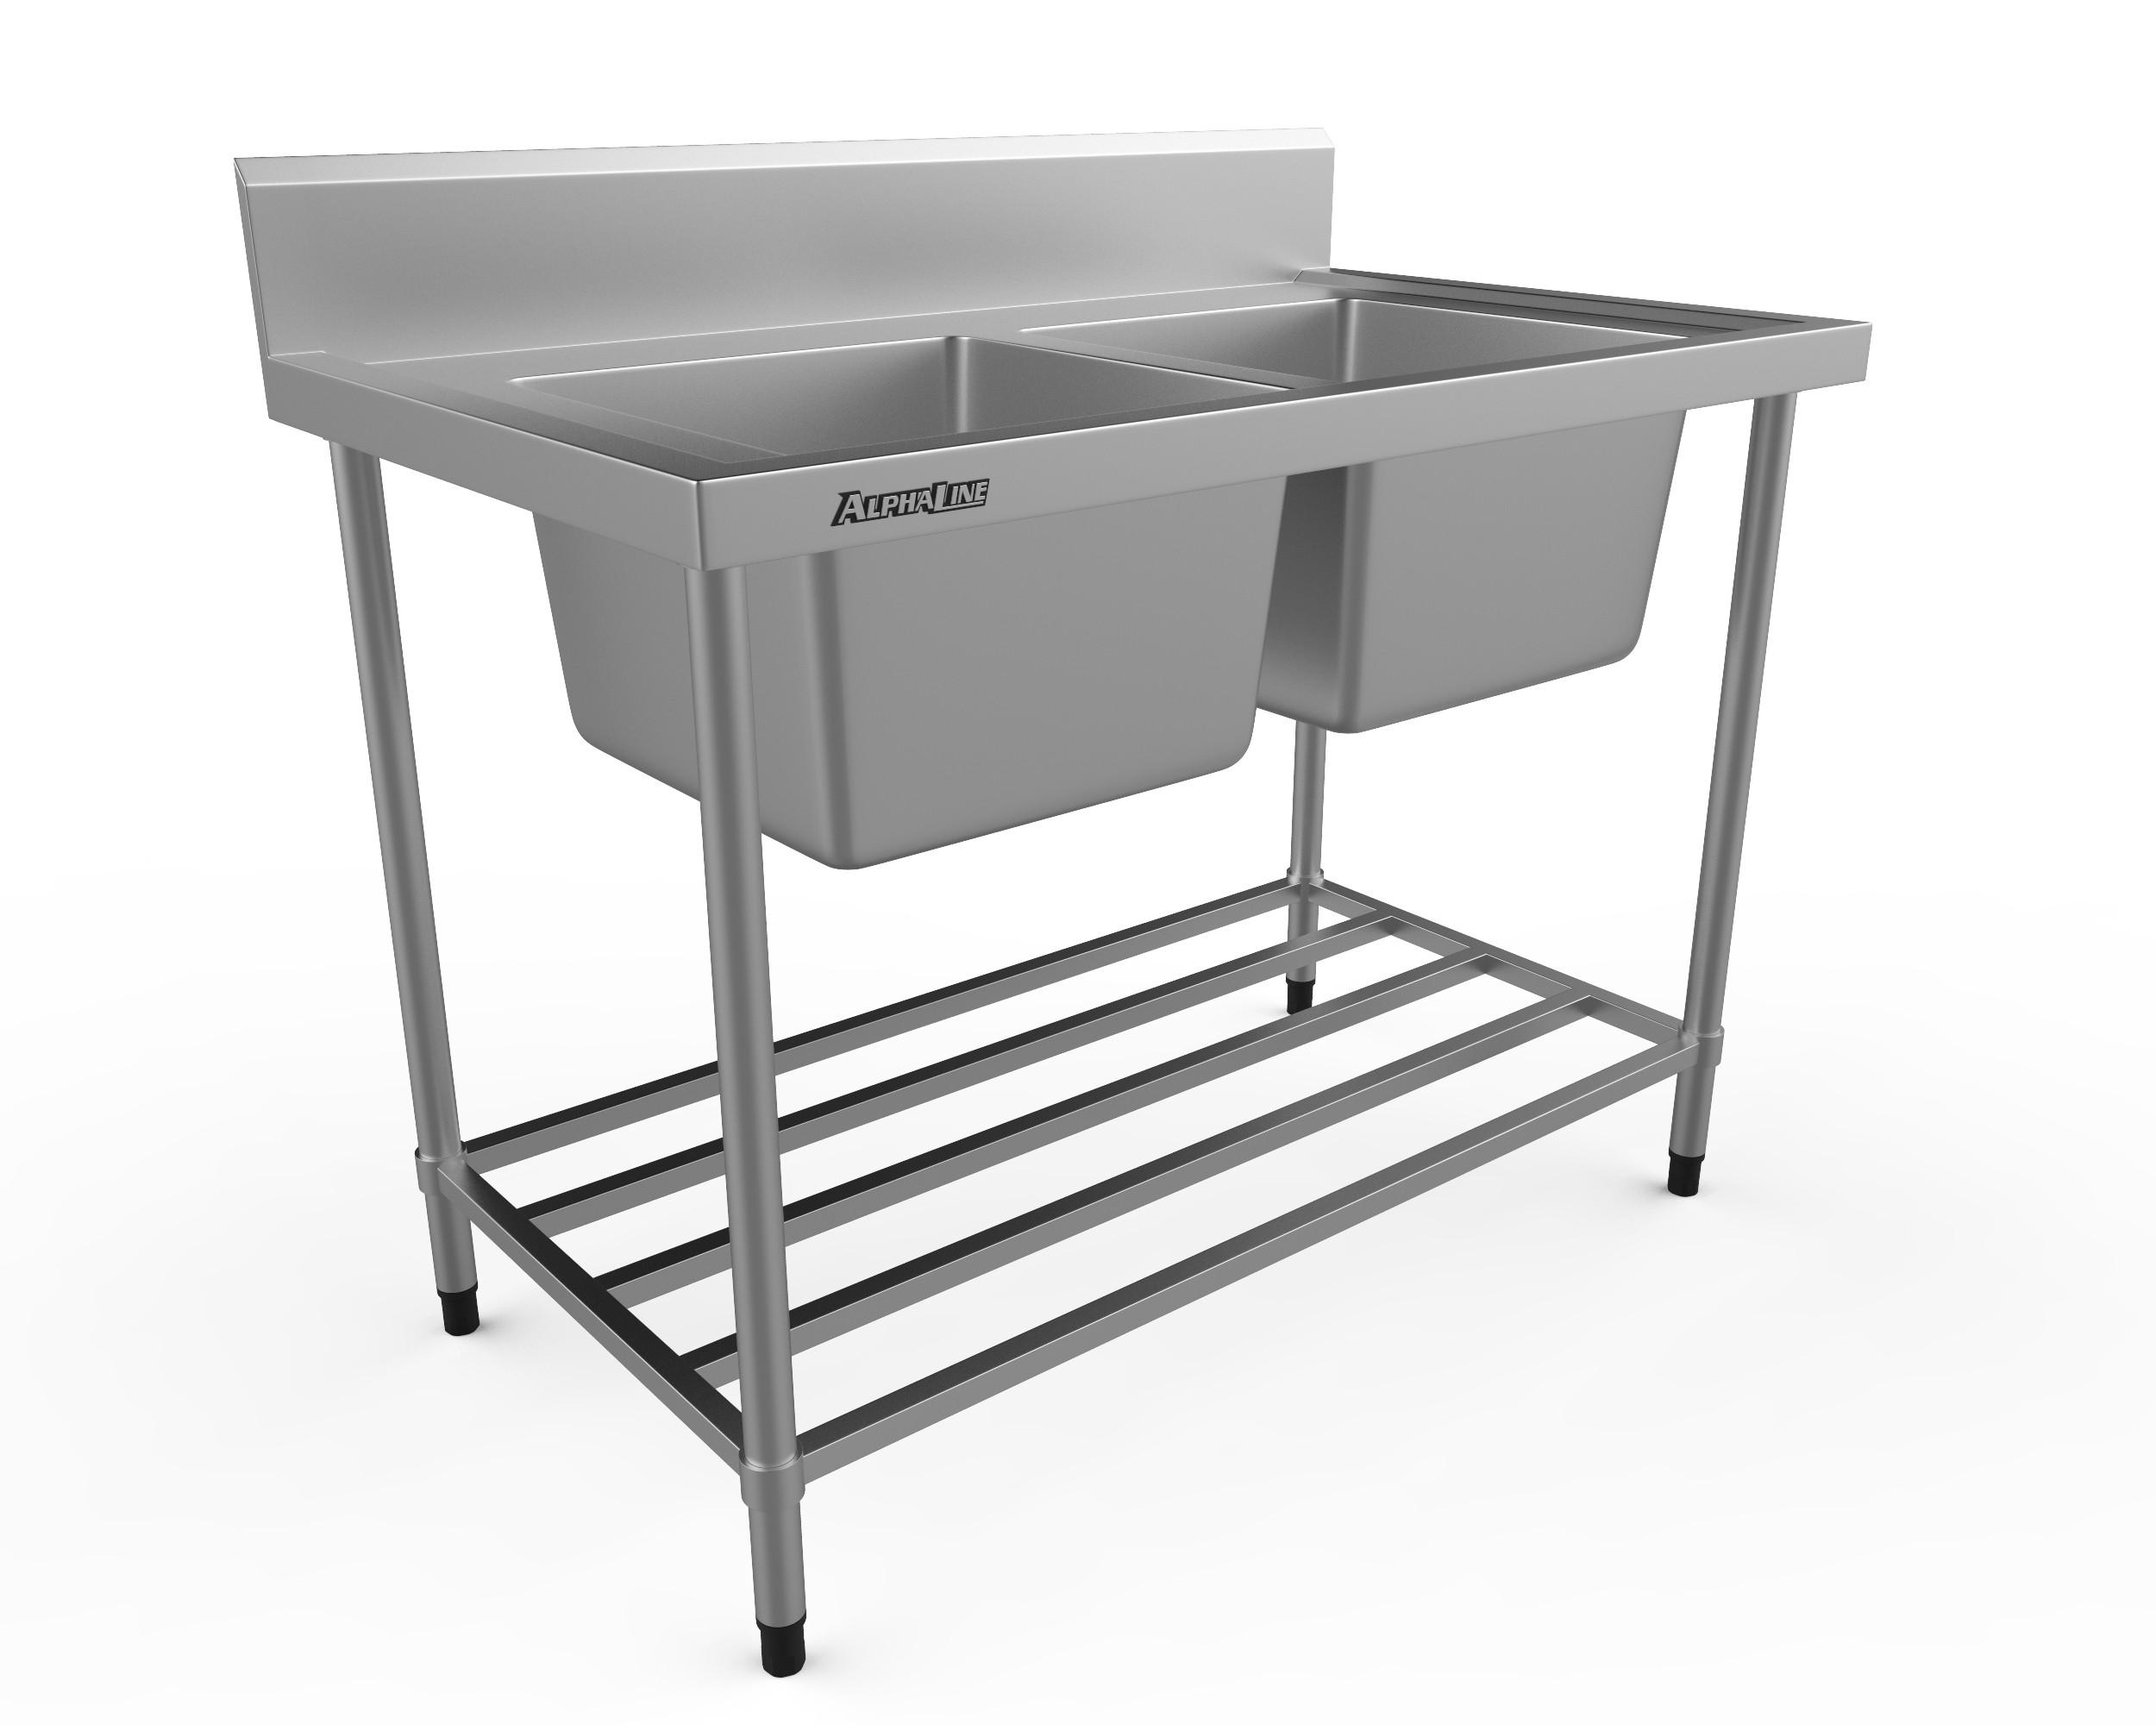 Stainless Steel Double Sink Bench - 1200 x 700 Centre bowls - XS2-70120C